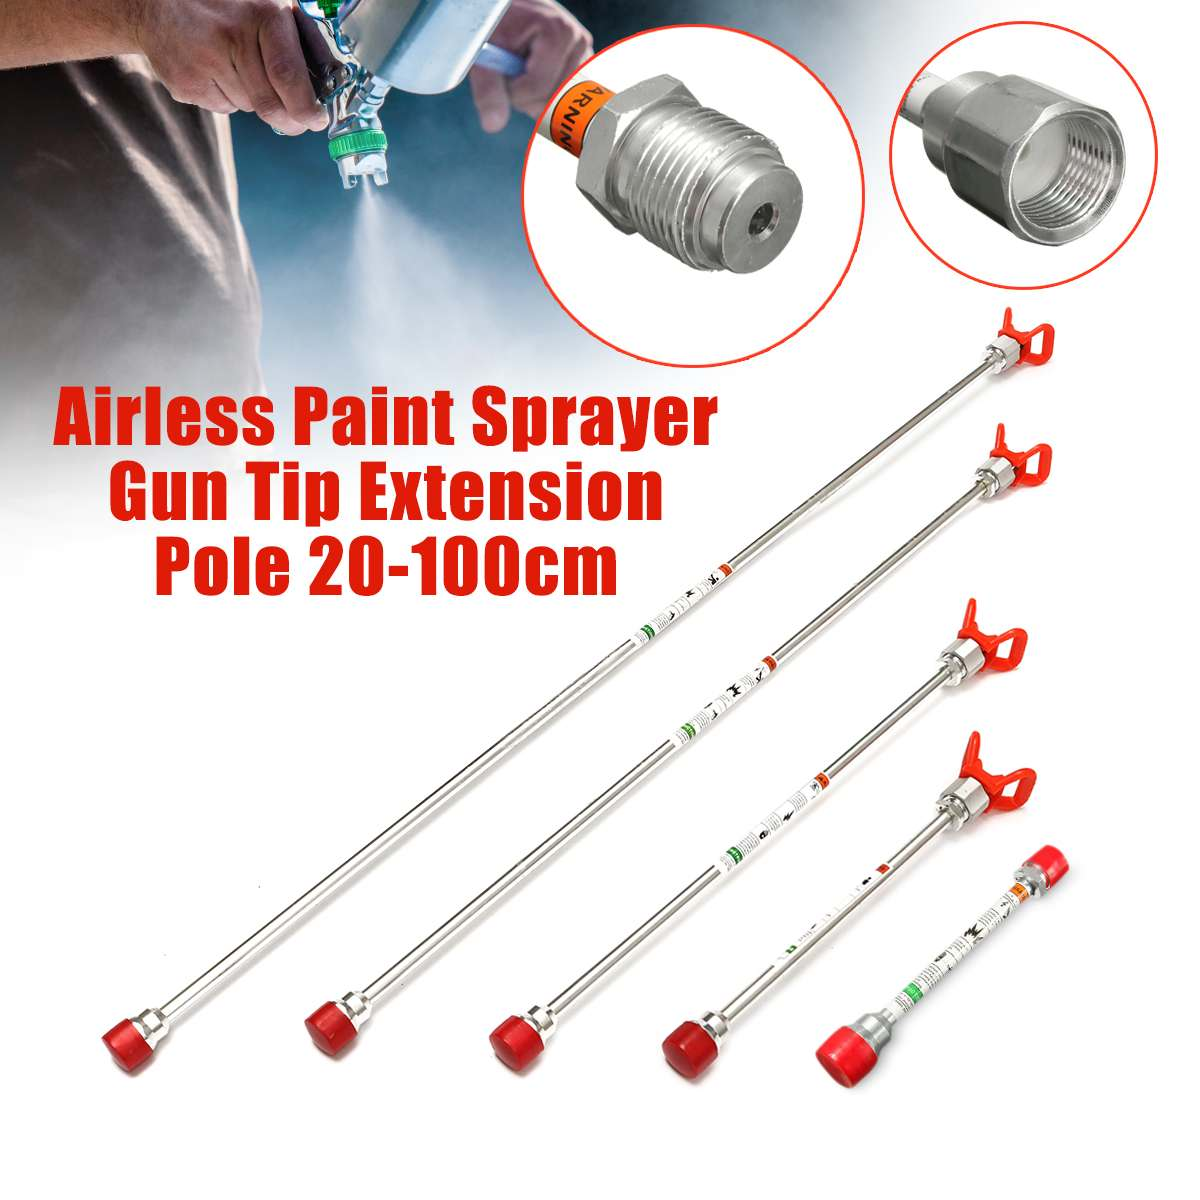 Airless Paint Sprayer Tip Extension Pole Spray Tool Fits For Titan Wagner 20/30/50/75/100cm Spray Guns Tool Parts